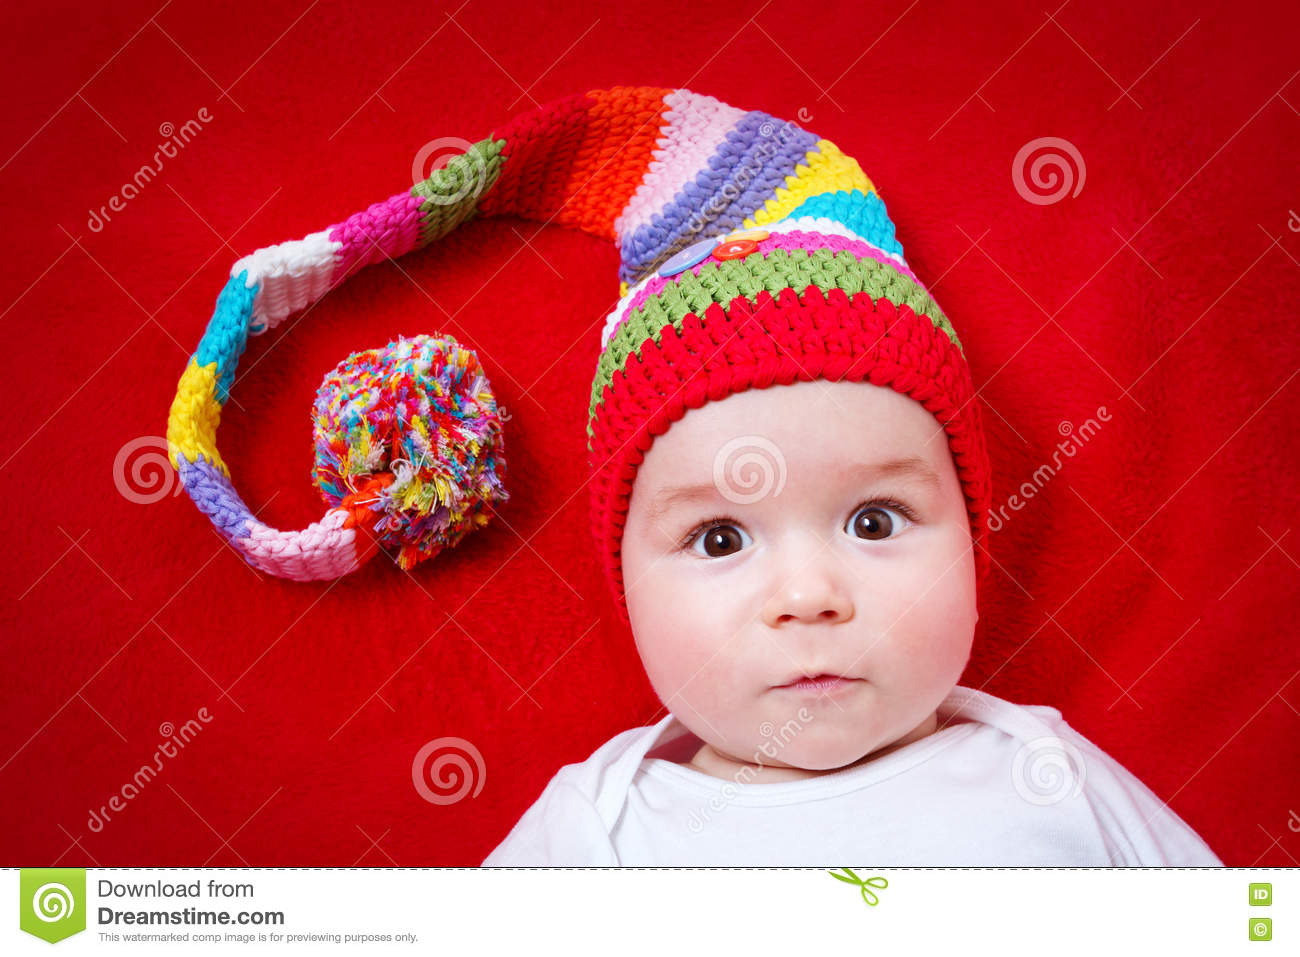 Baby in red and white hat